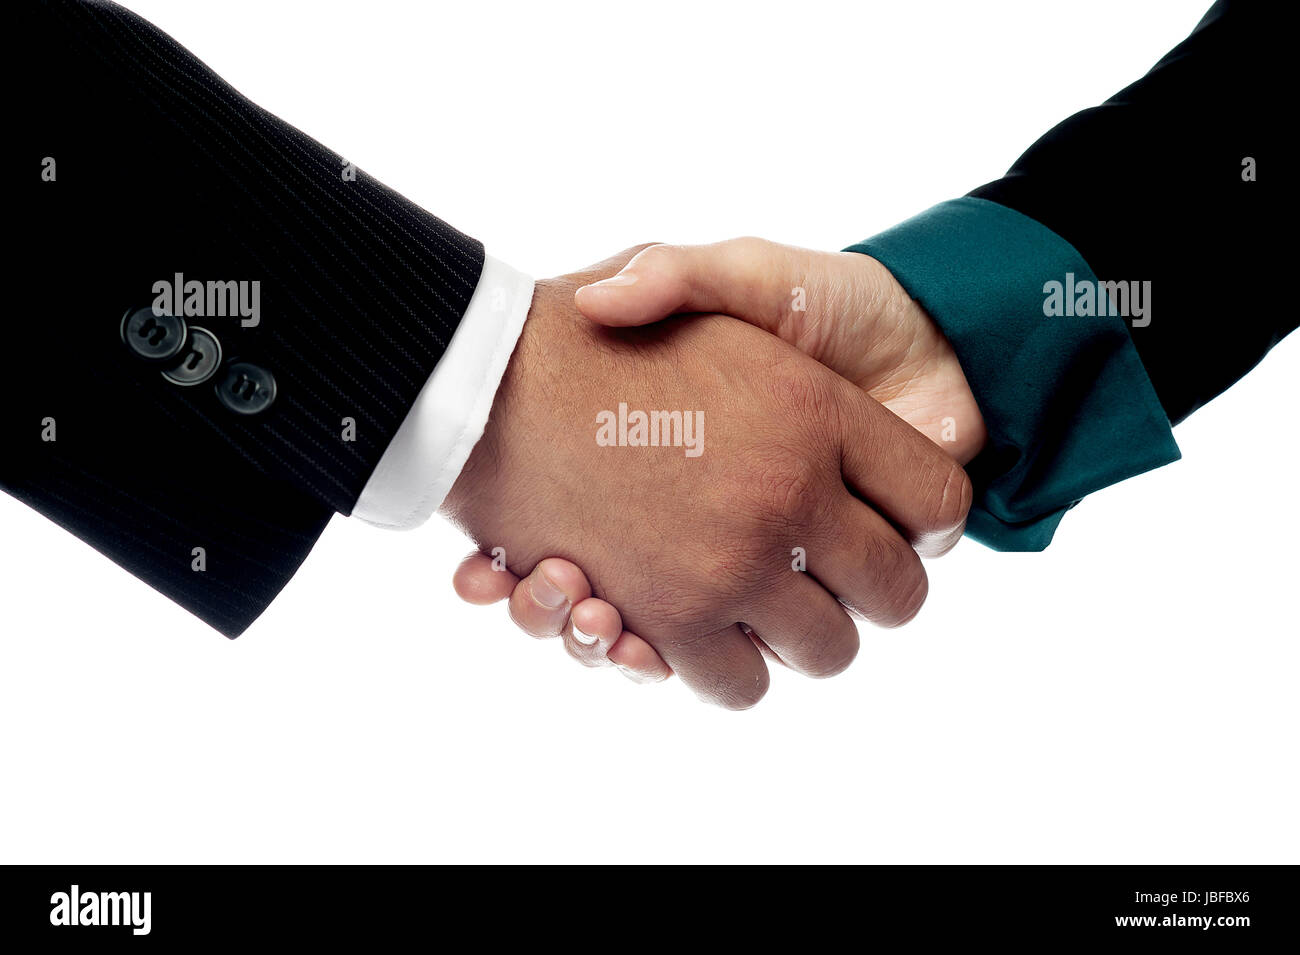 The deal is finalized, congratulations! - Stock Image